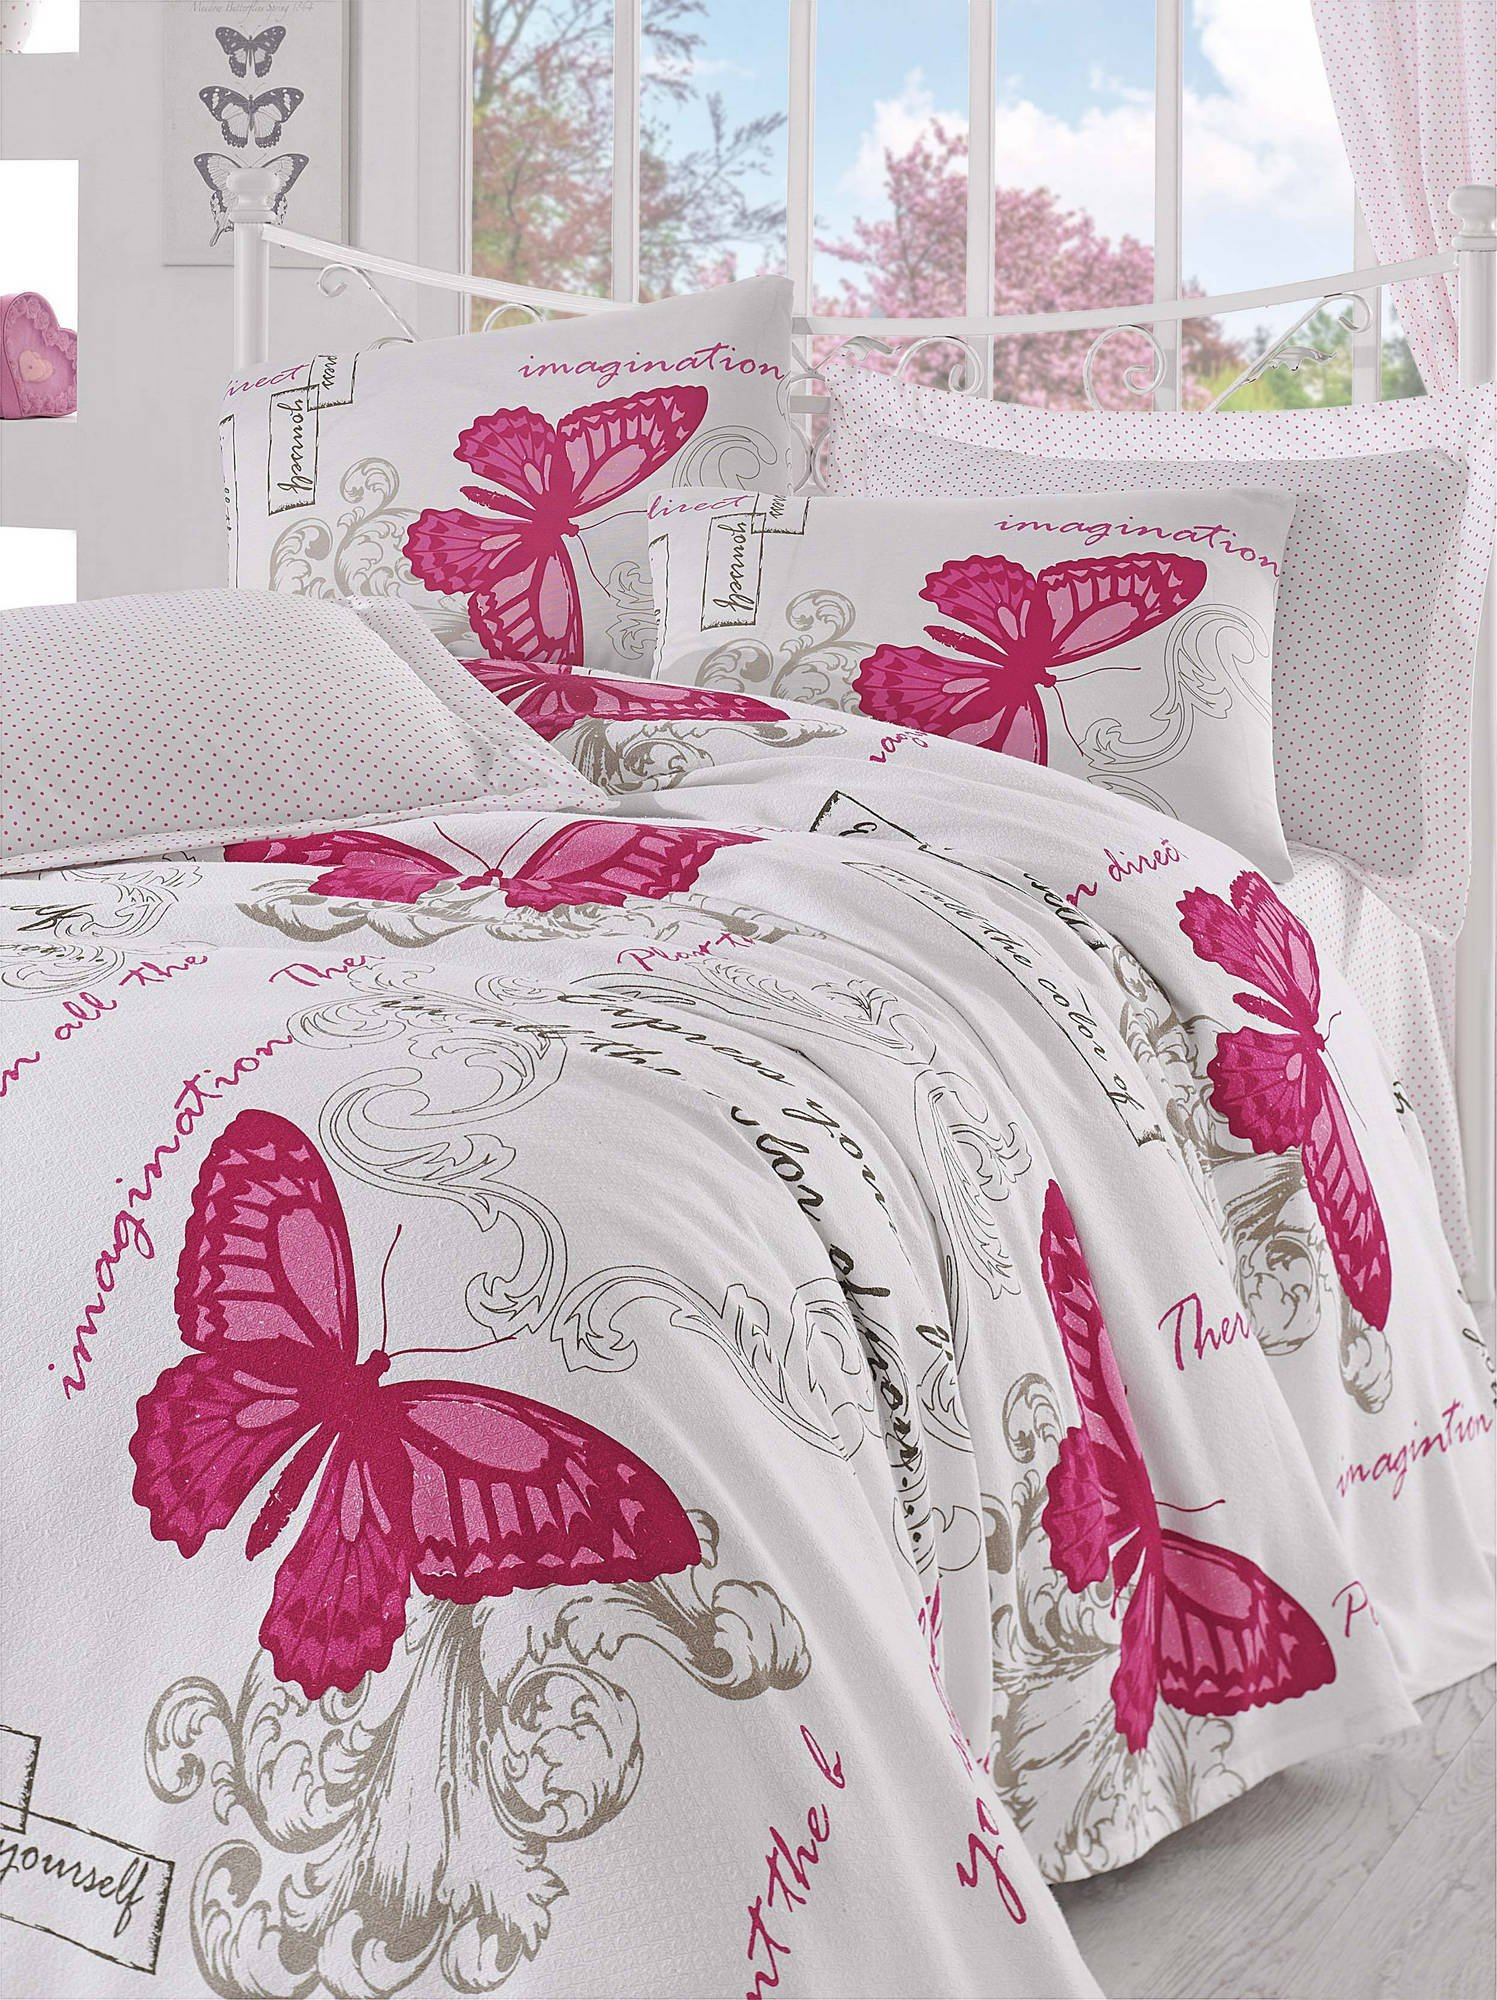 LaModaHome Luxury Soft Colored Bedroom Bedding 100% Cotton Double Coverlet (Pique) Thin Coverlet Summer/Article Butterfly Wing Bird Animal Motif Design/Double